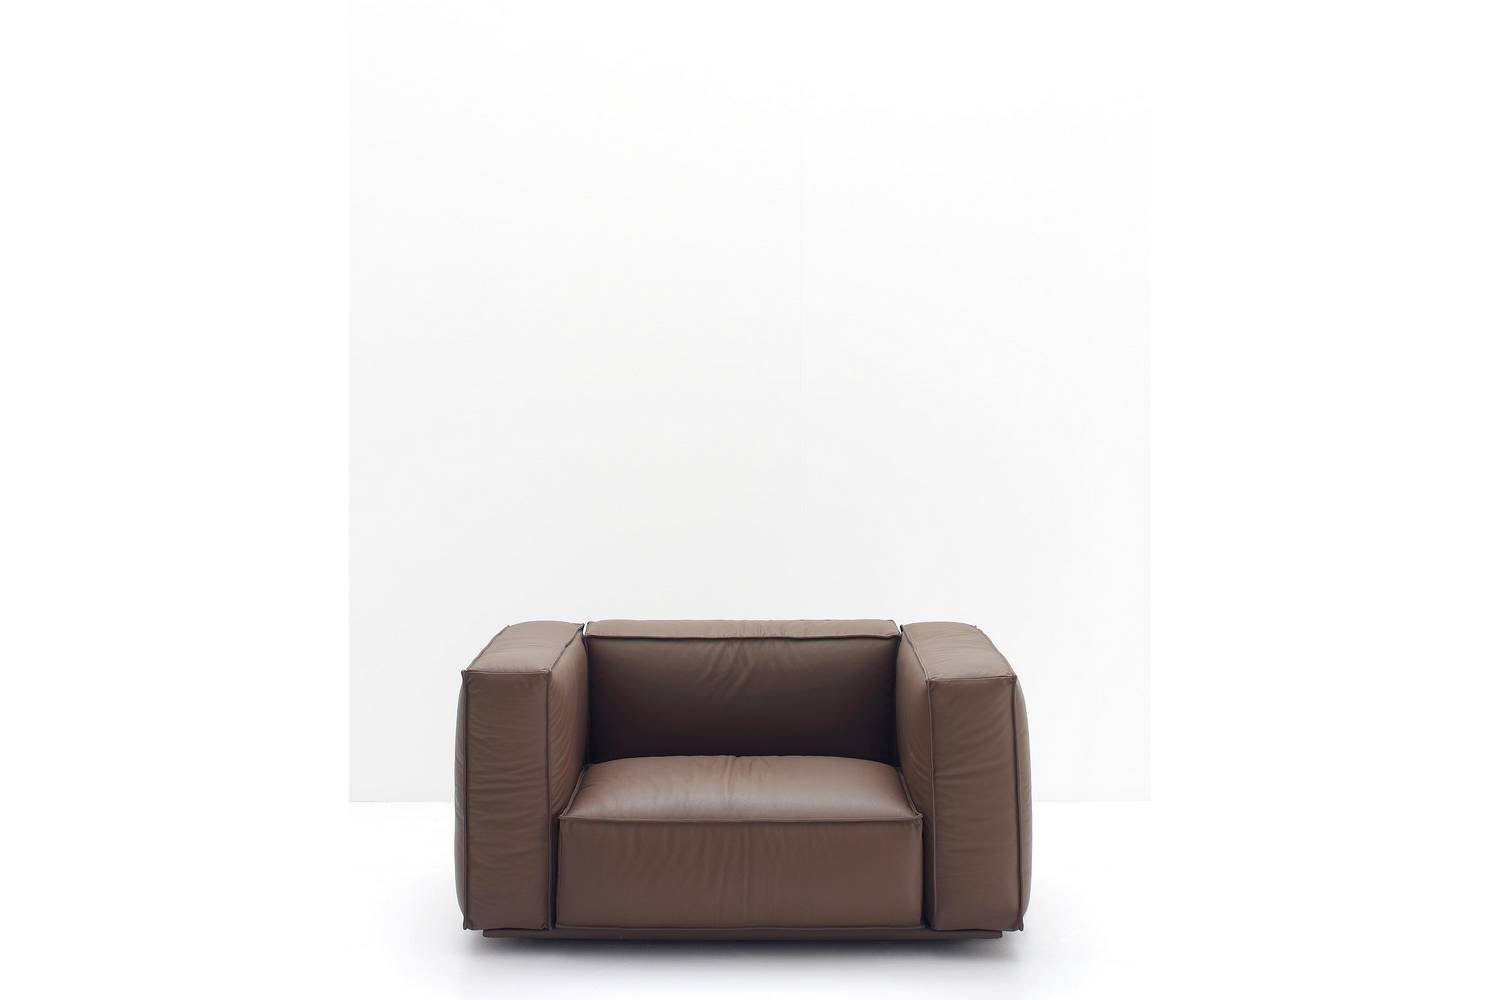 Marechiaro XIII Armchair by Arflex for Arflex